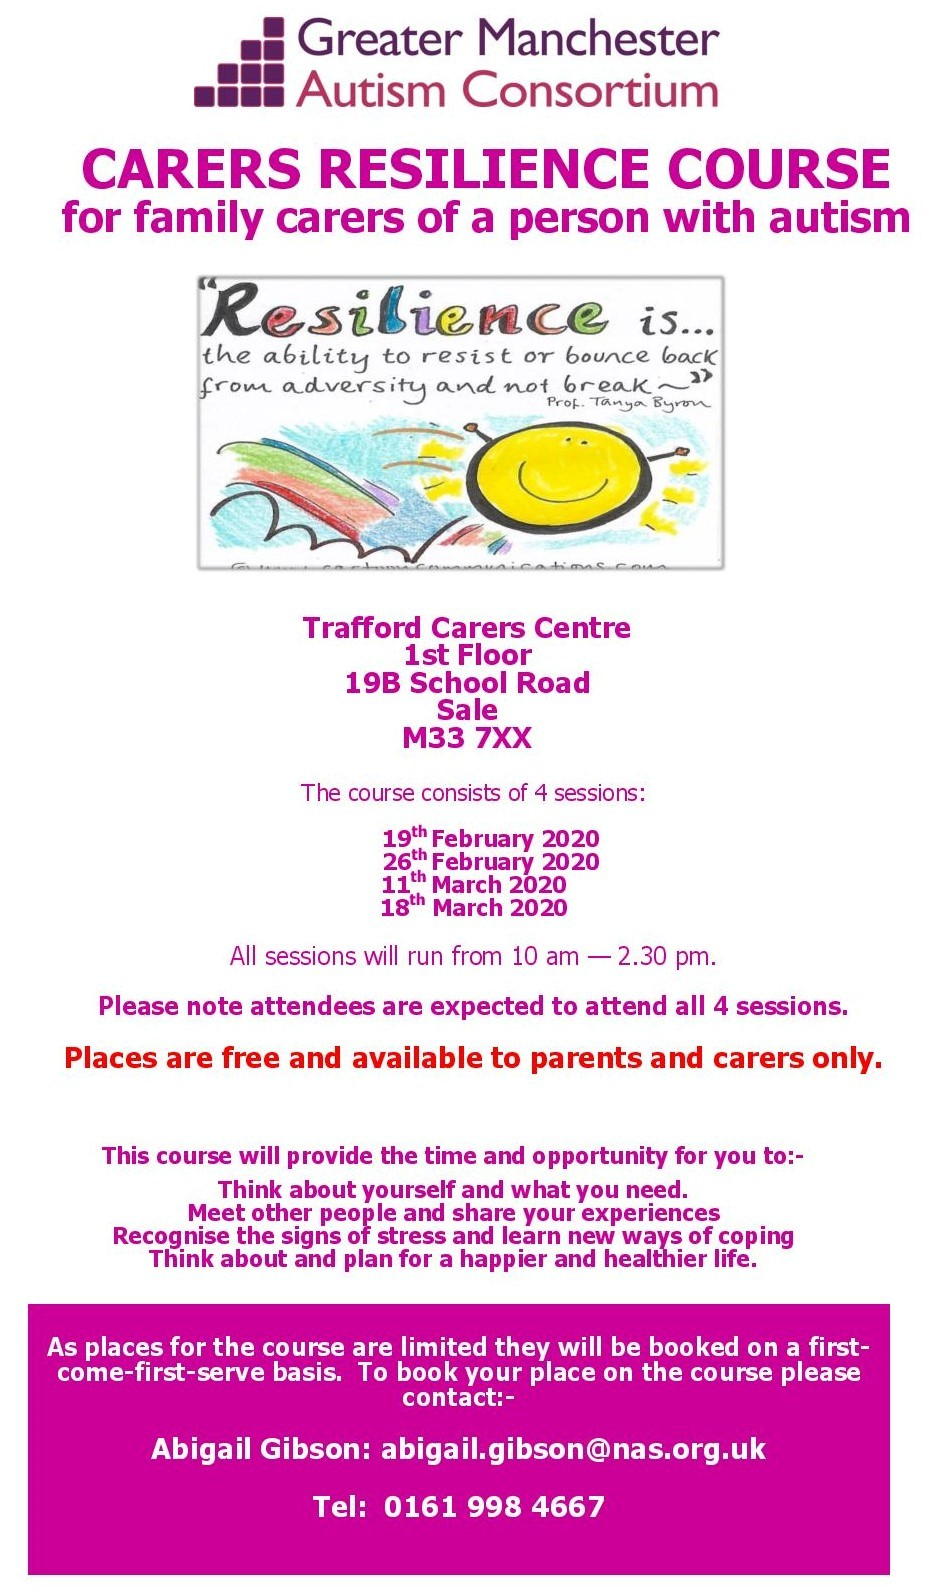 Carers resilience course flyer